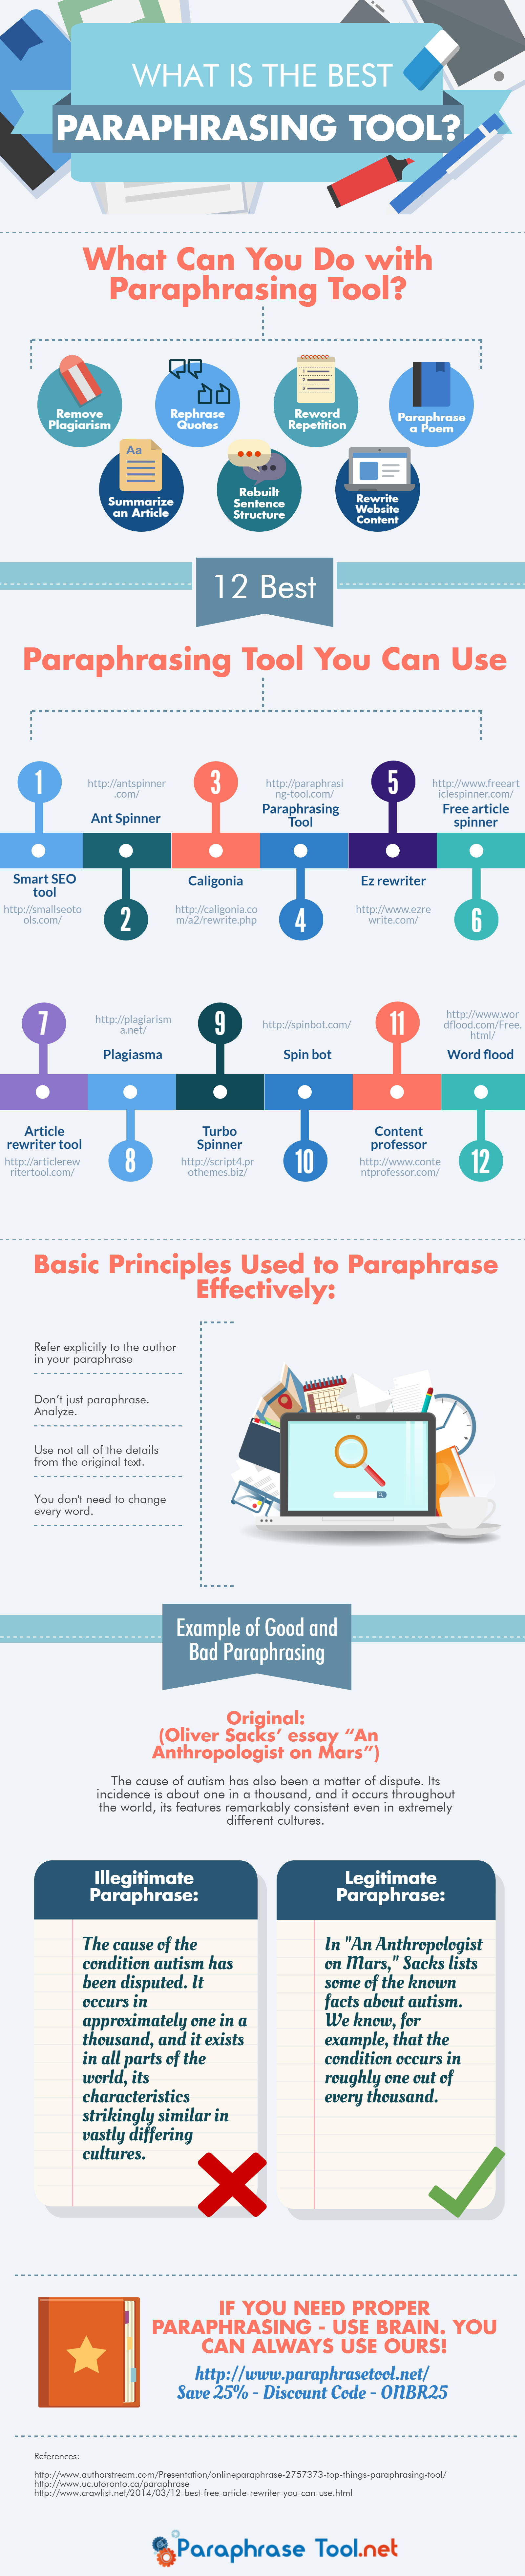 Http Www Paraphrasetool Net What I The Best Paraphrasing Tool Are Online Ar Academic Writing Paraphrase Simple English